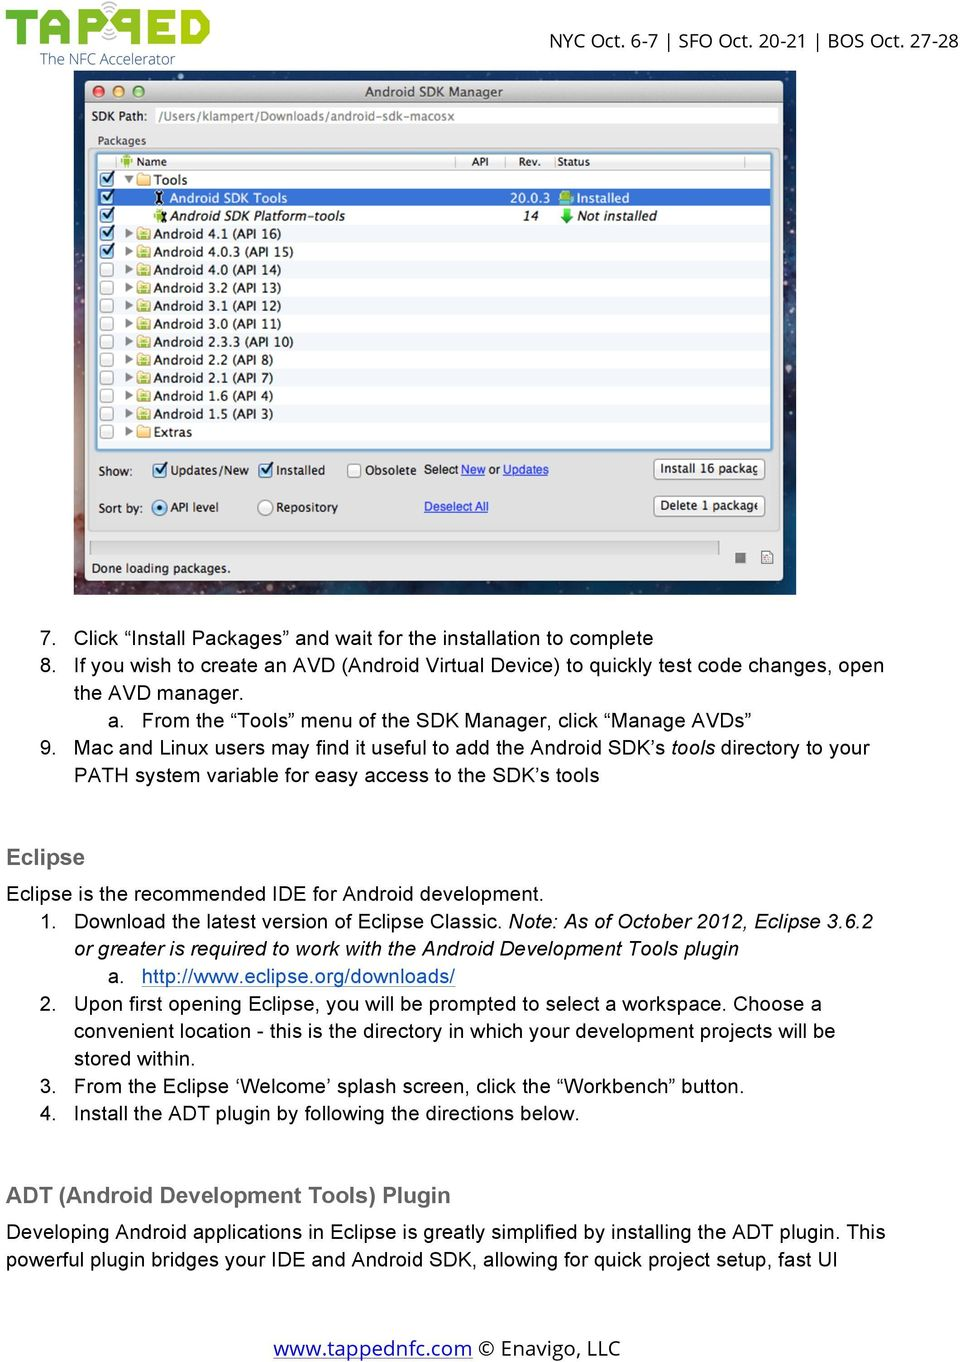 development. 1. Download the latest version of Eclipse Classic. Note: As of October 2012, Eclipse 3.6.2 or greater is required to work with the Android Development Tools plugin a. http://www.eclipse.